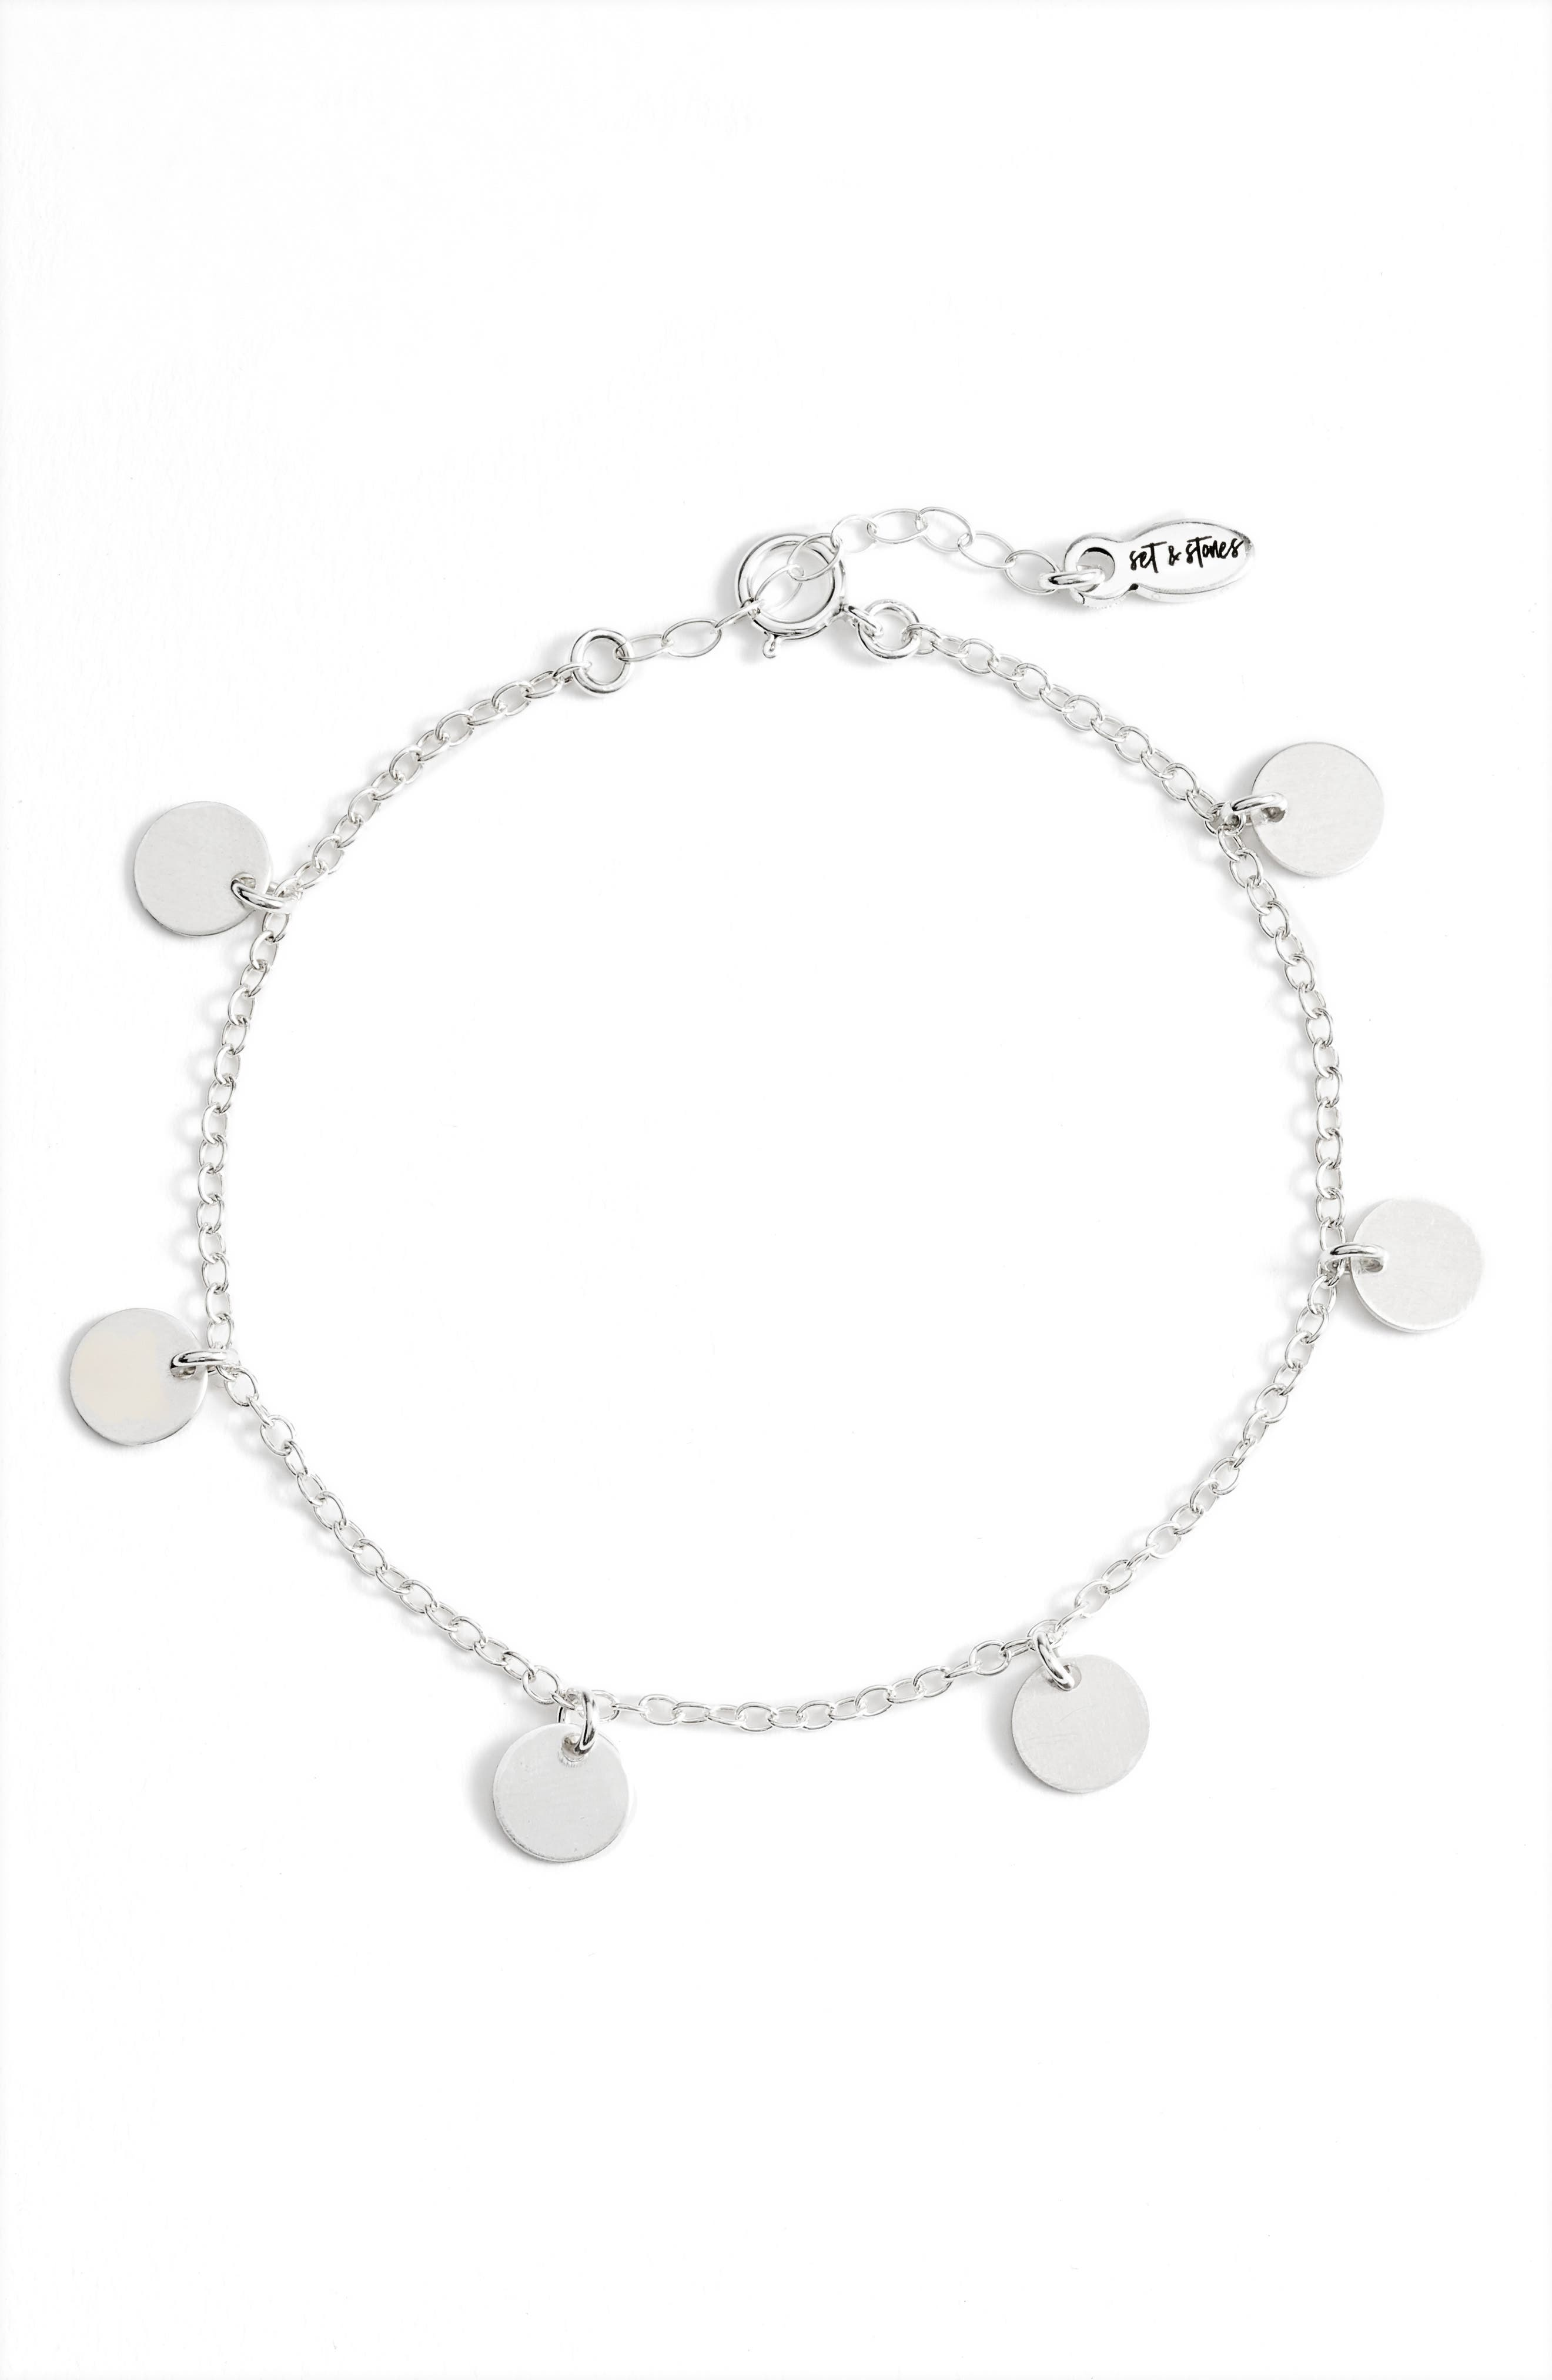 A delicate chain is accented with gleaming disc charms on this handmade bracelet that will be your everyday fave. Style Name: Set & Stone Quinn Disc Bracelet. Style Number: 6057558. Available in stores.